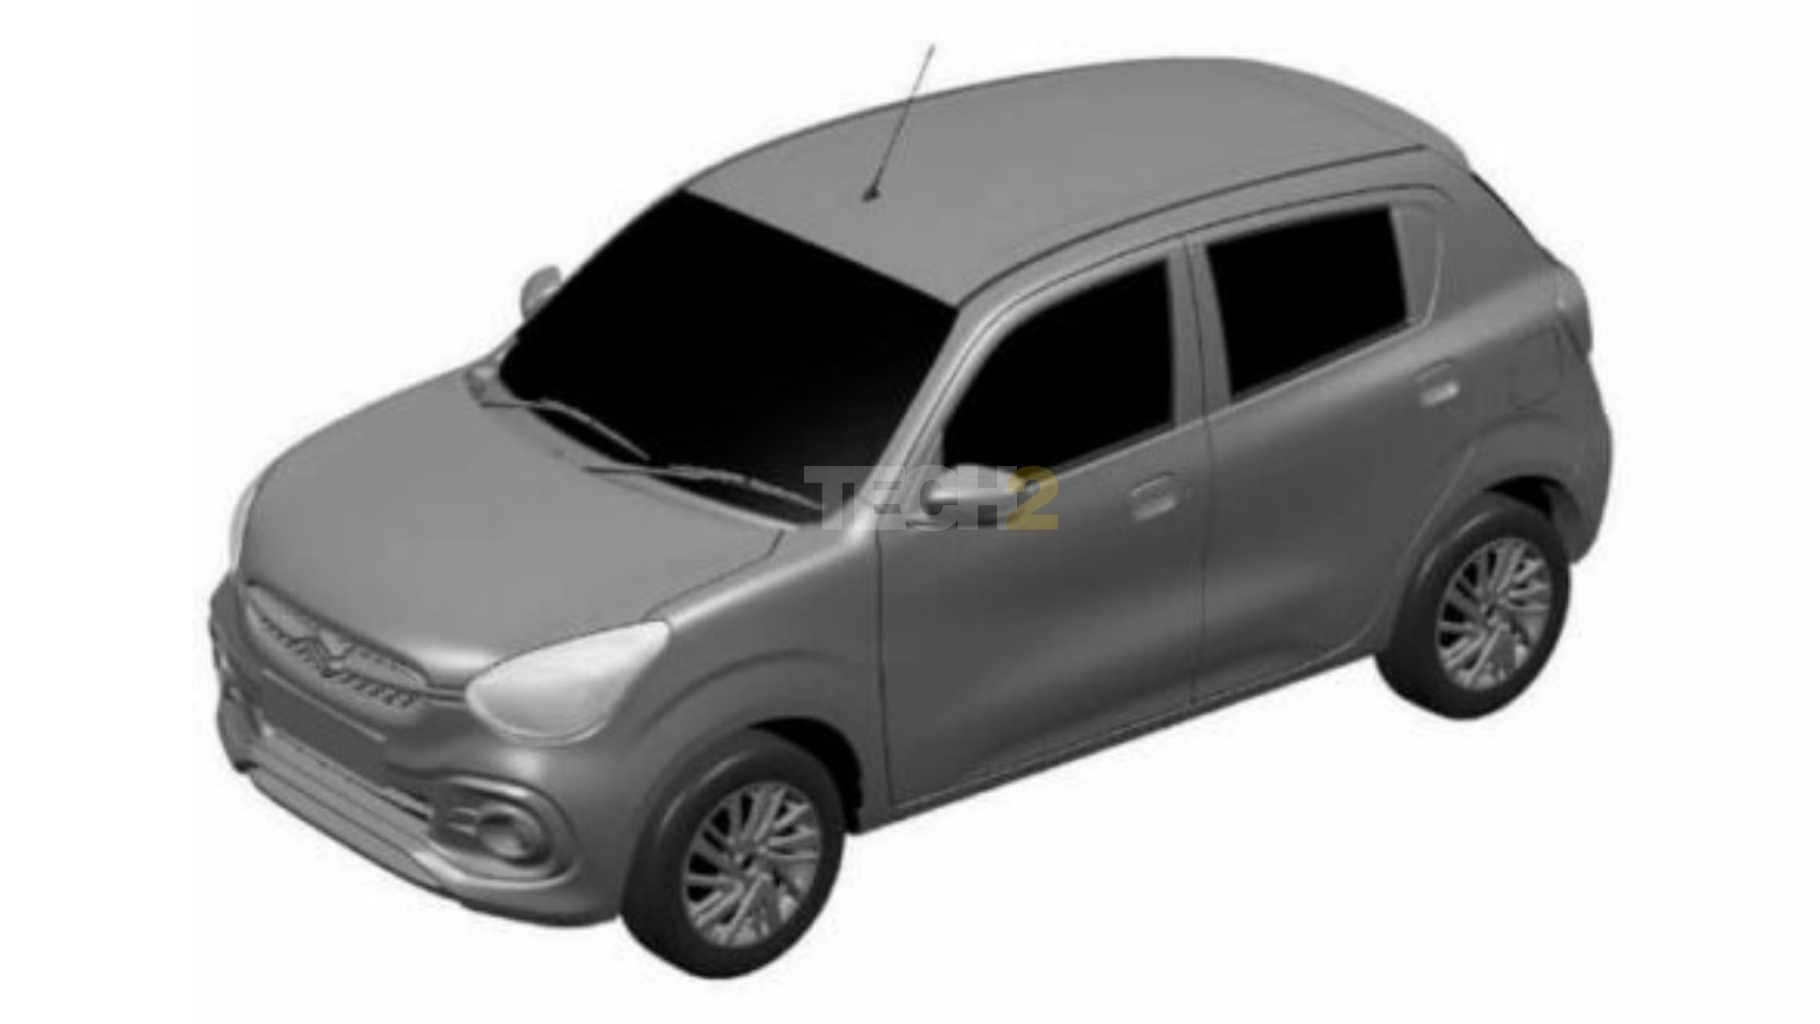 In its second generation, the 2021 Maruti Suzuki Celerio is expected to make the switch to the Heartect platform.